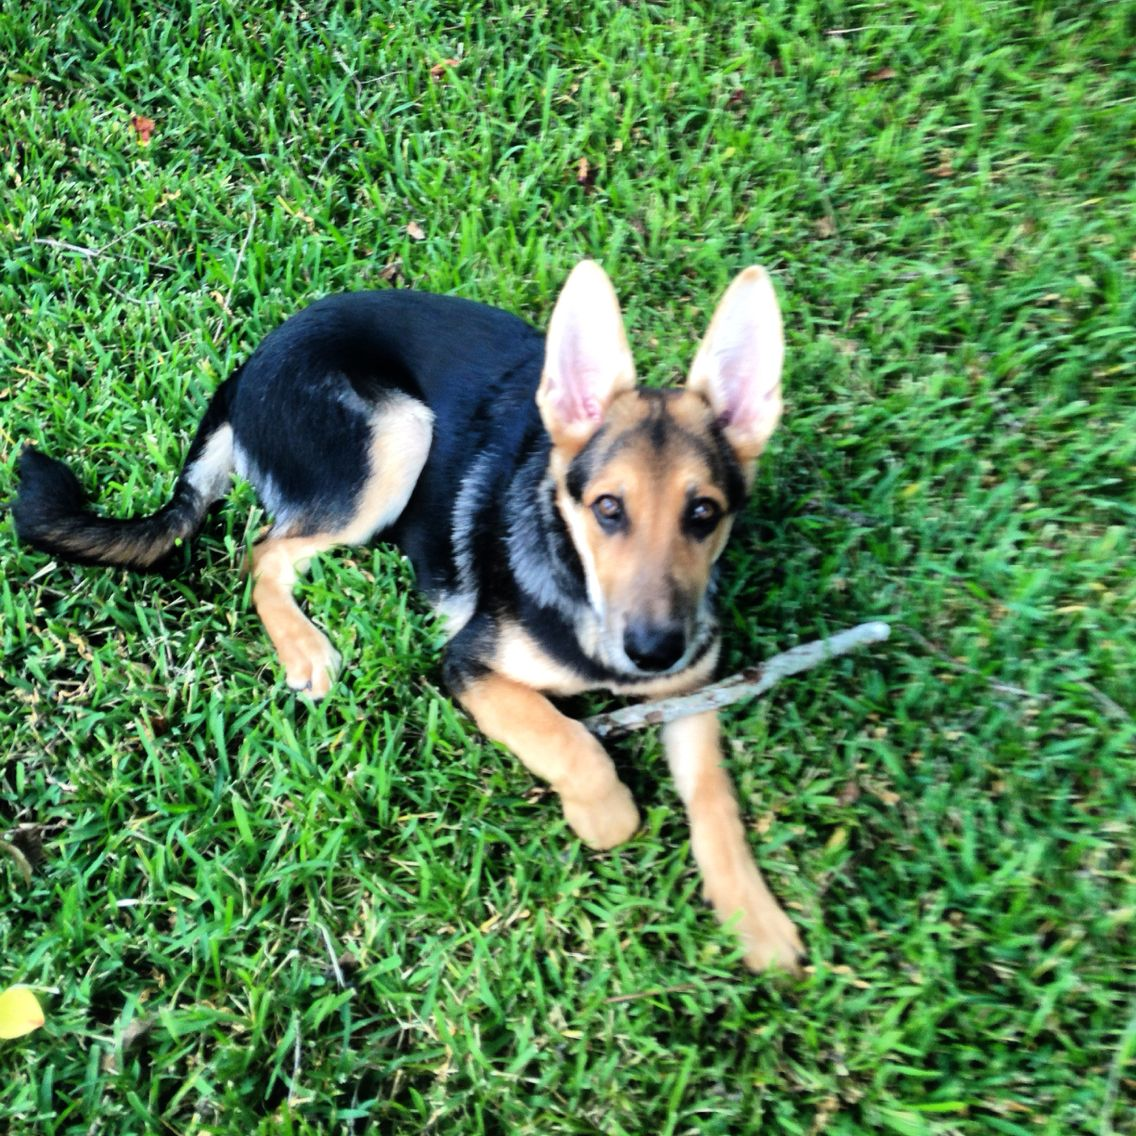 My german shepherd puppy is perfect Ace Buddy I hope to show you as much love as you show me